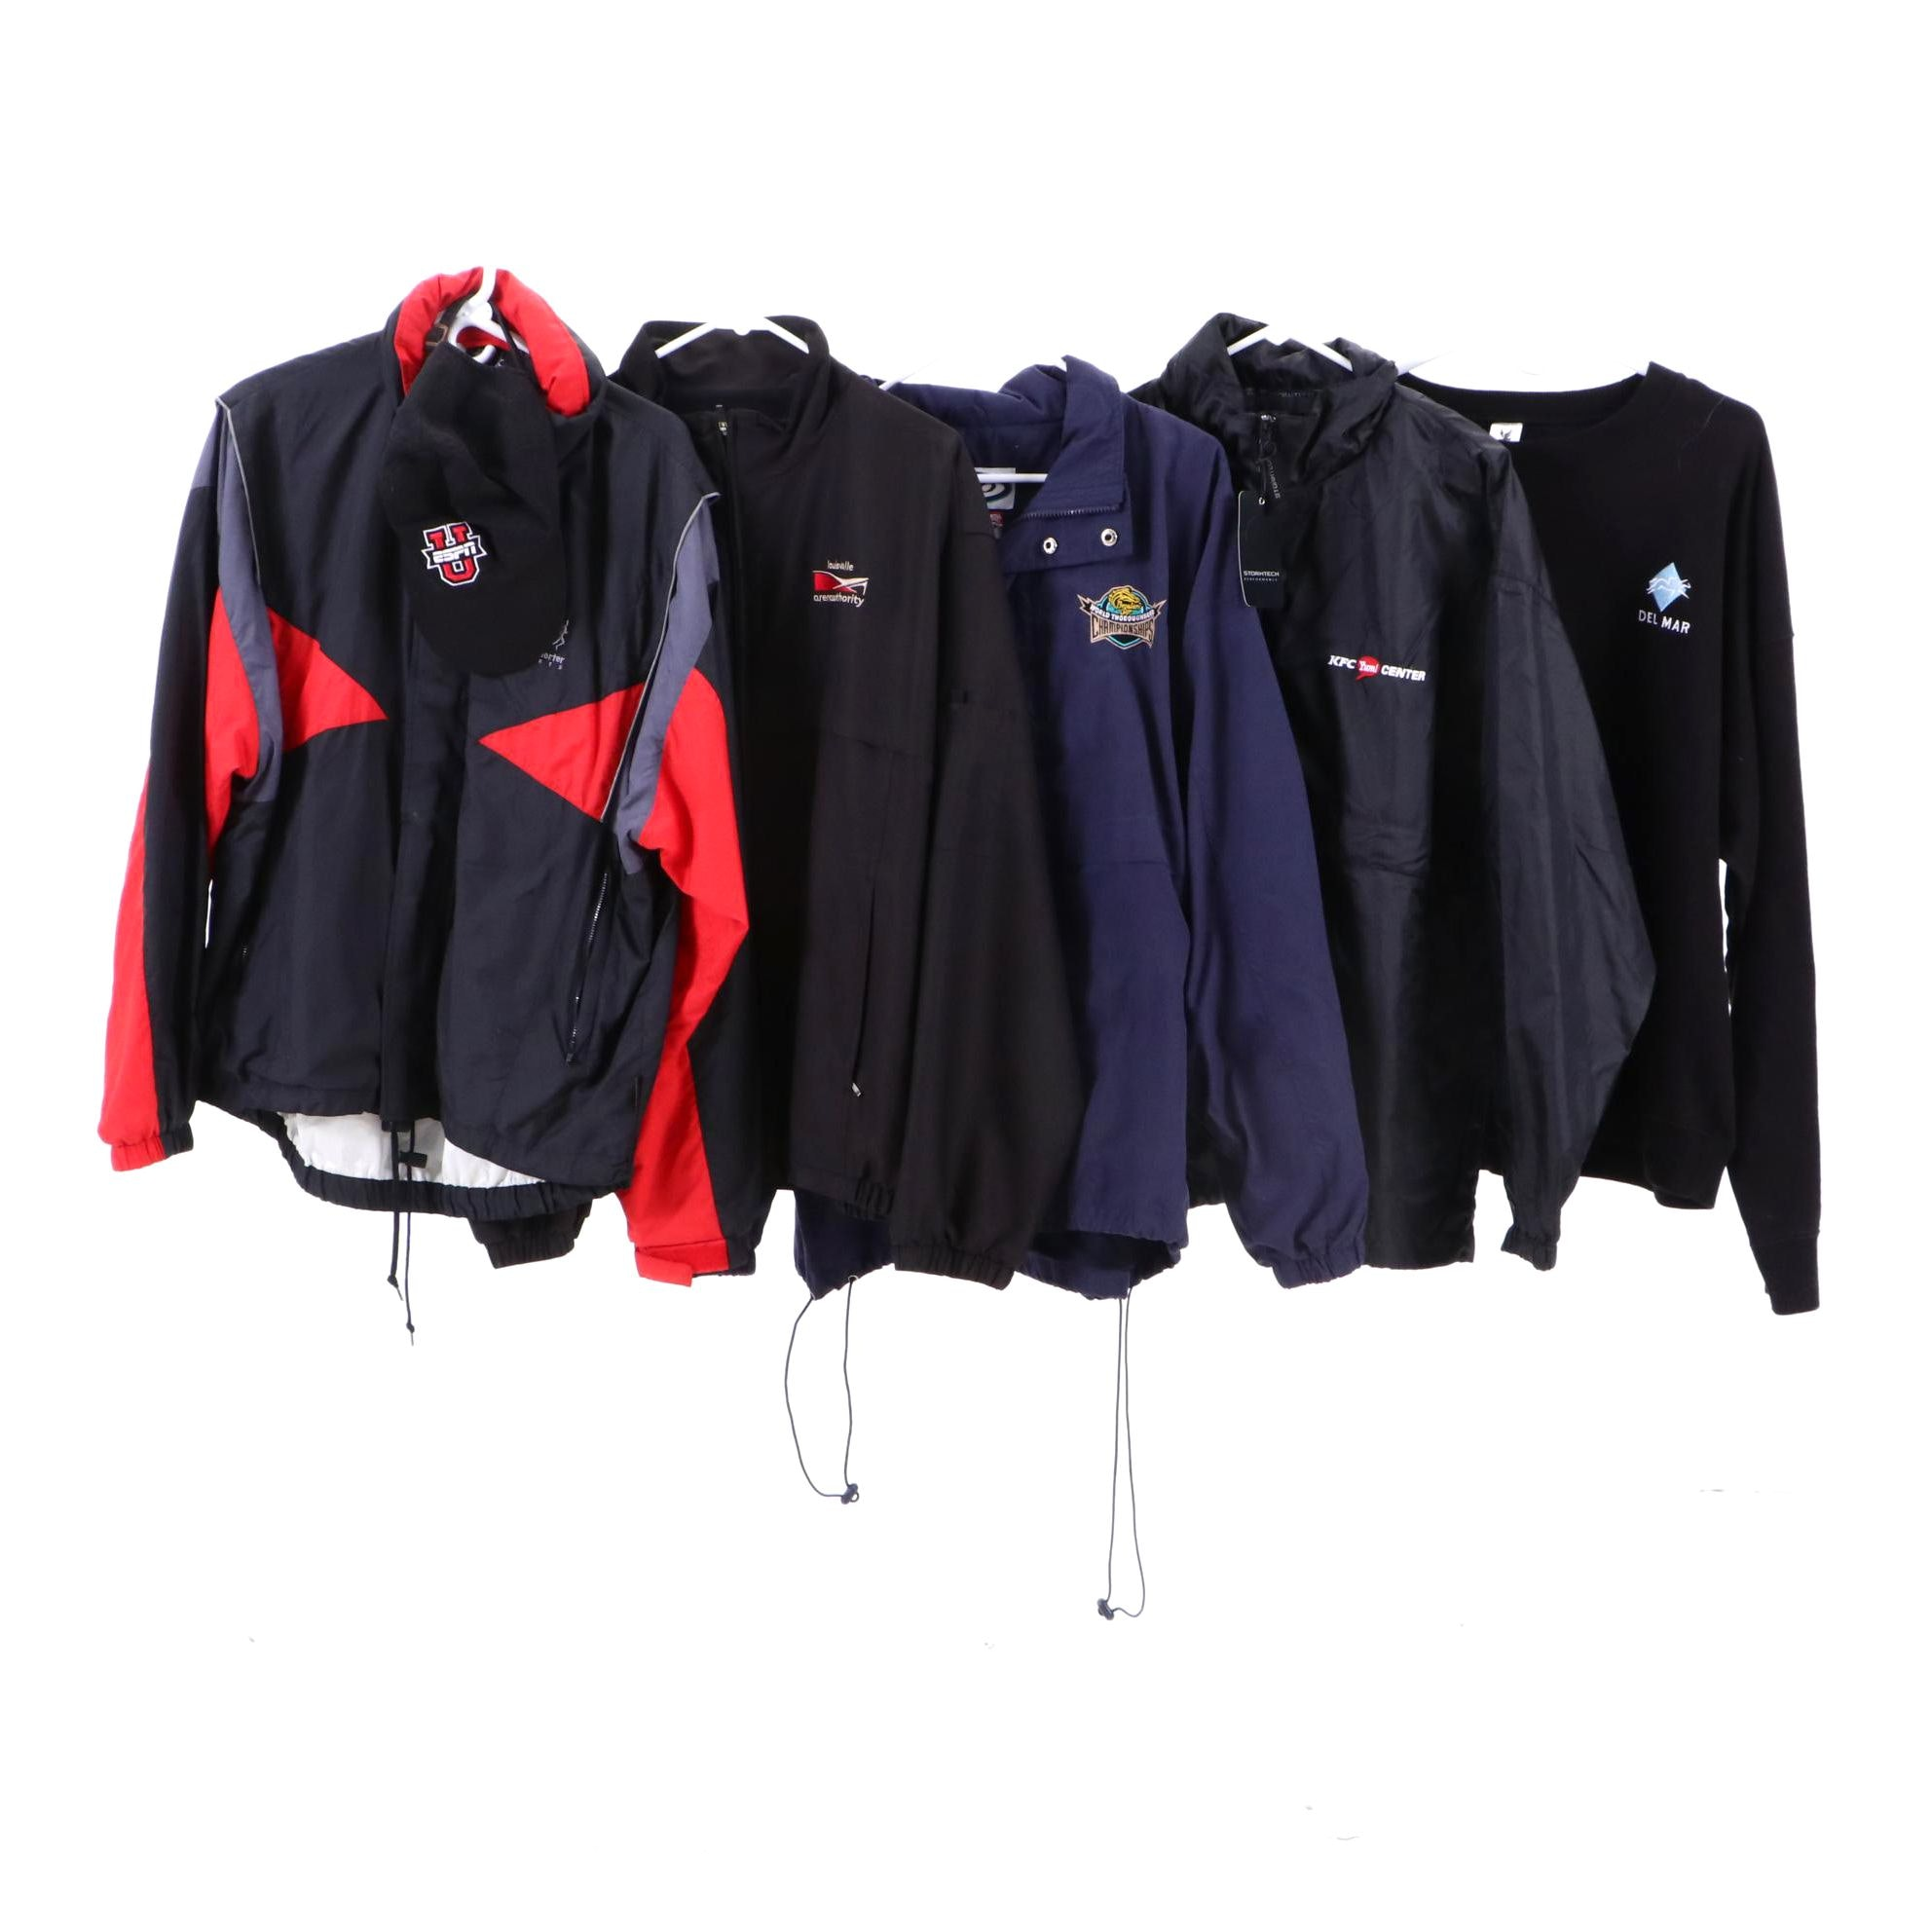 Men's Jackets, Sweater and Hat